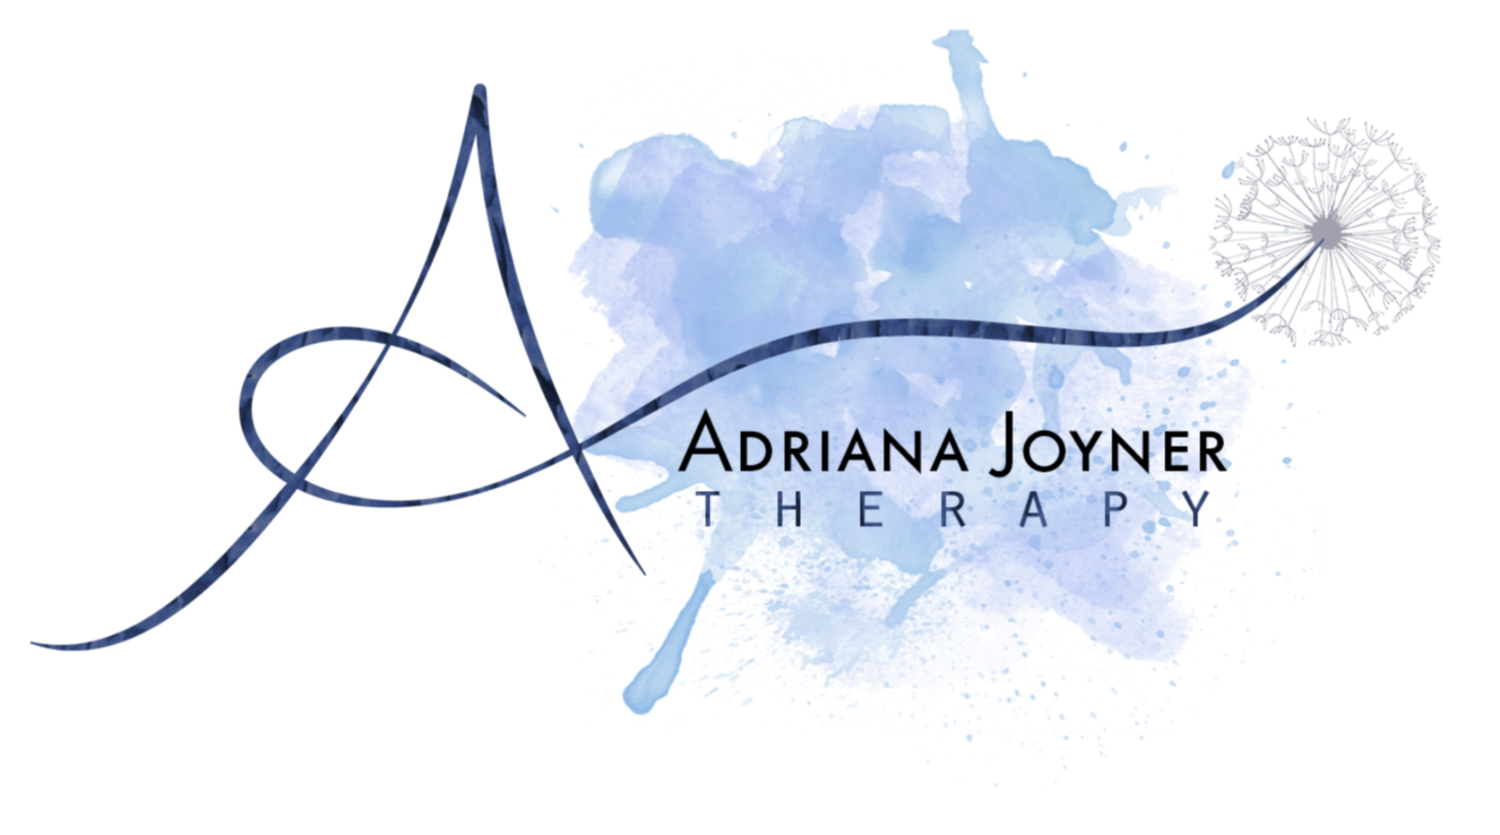 Adriana Joyner Therapy - Personal growth counseling in the Gold River, Fair Oaks and Rancho Cordova Areas